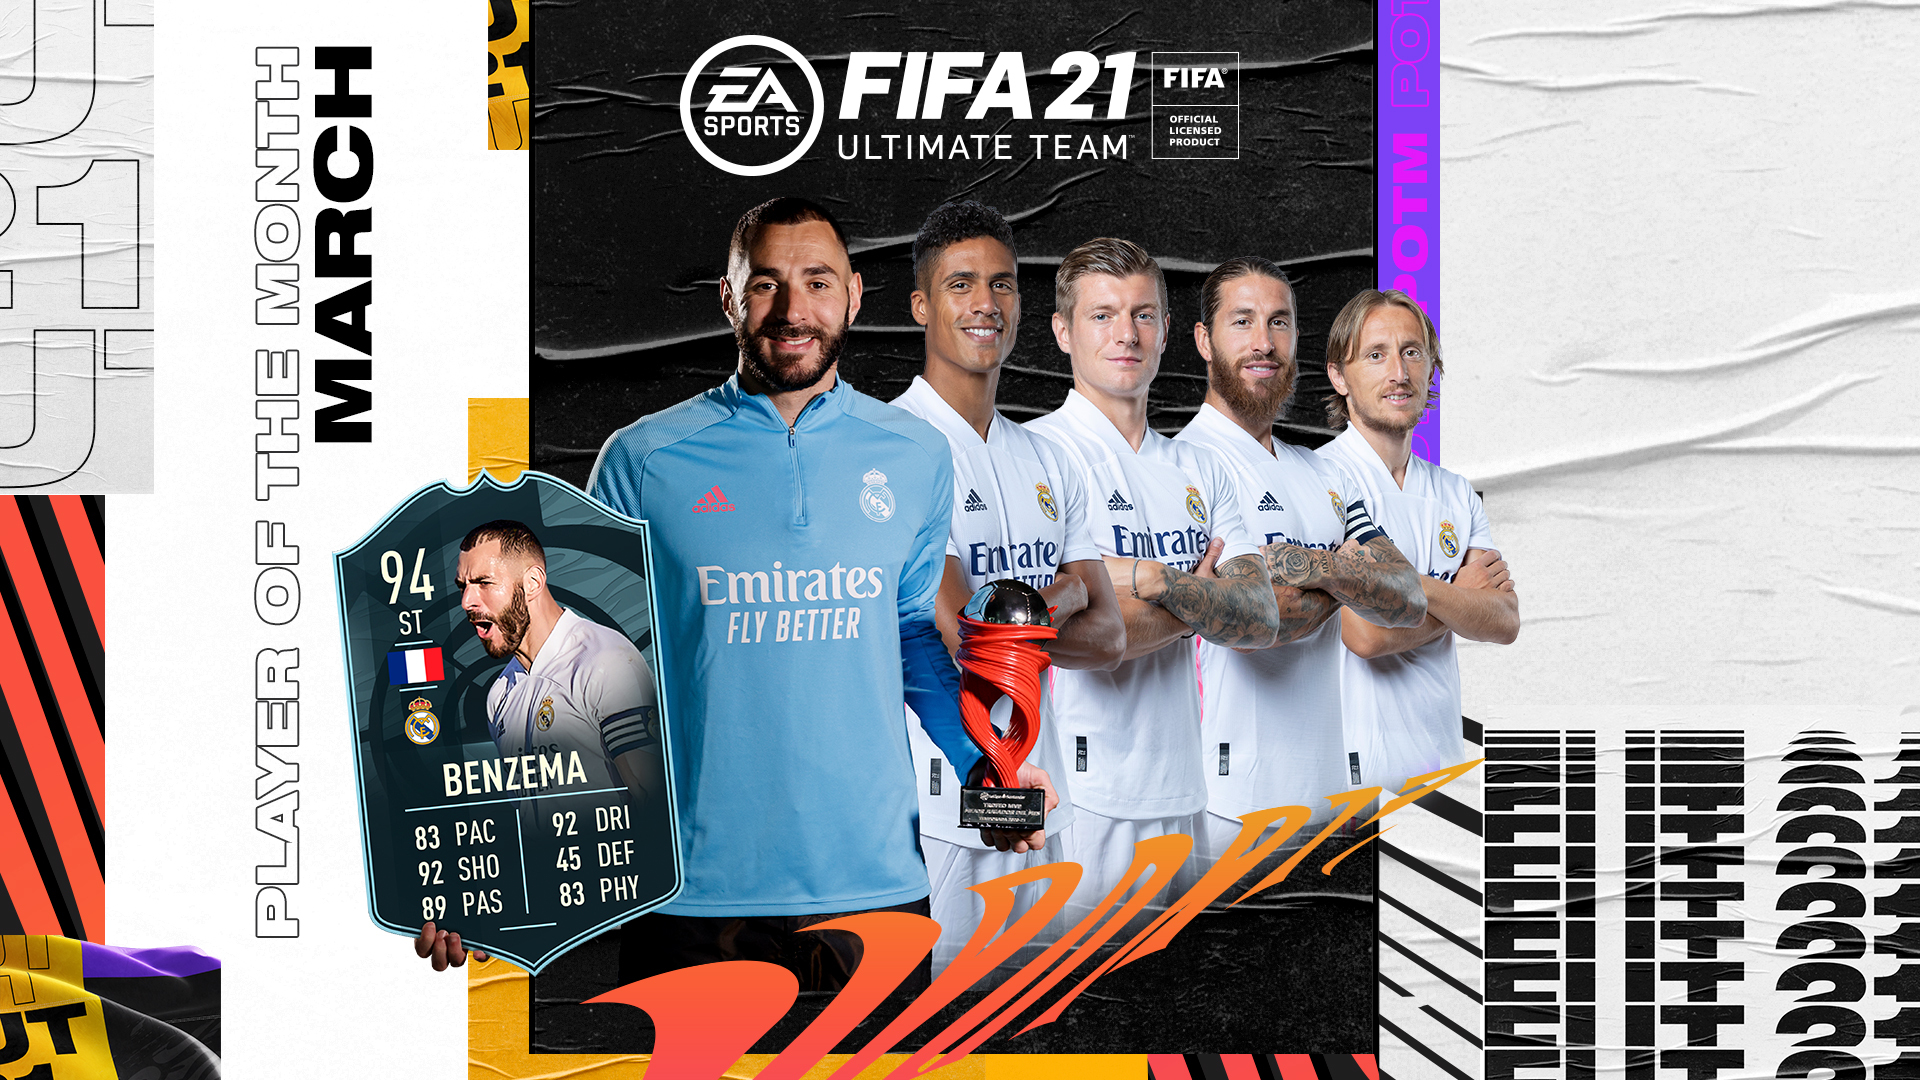 How to complete POTM Benzema SBC in FIFA 21 Ultimate Team